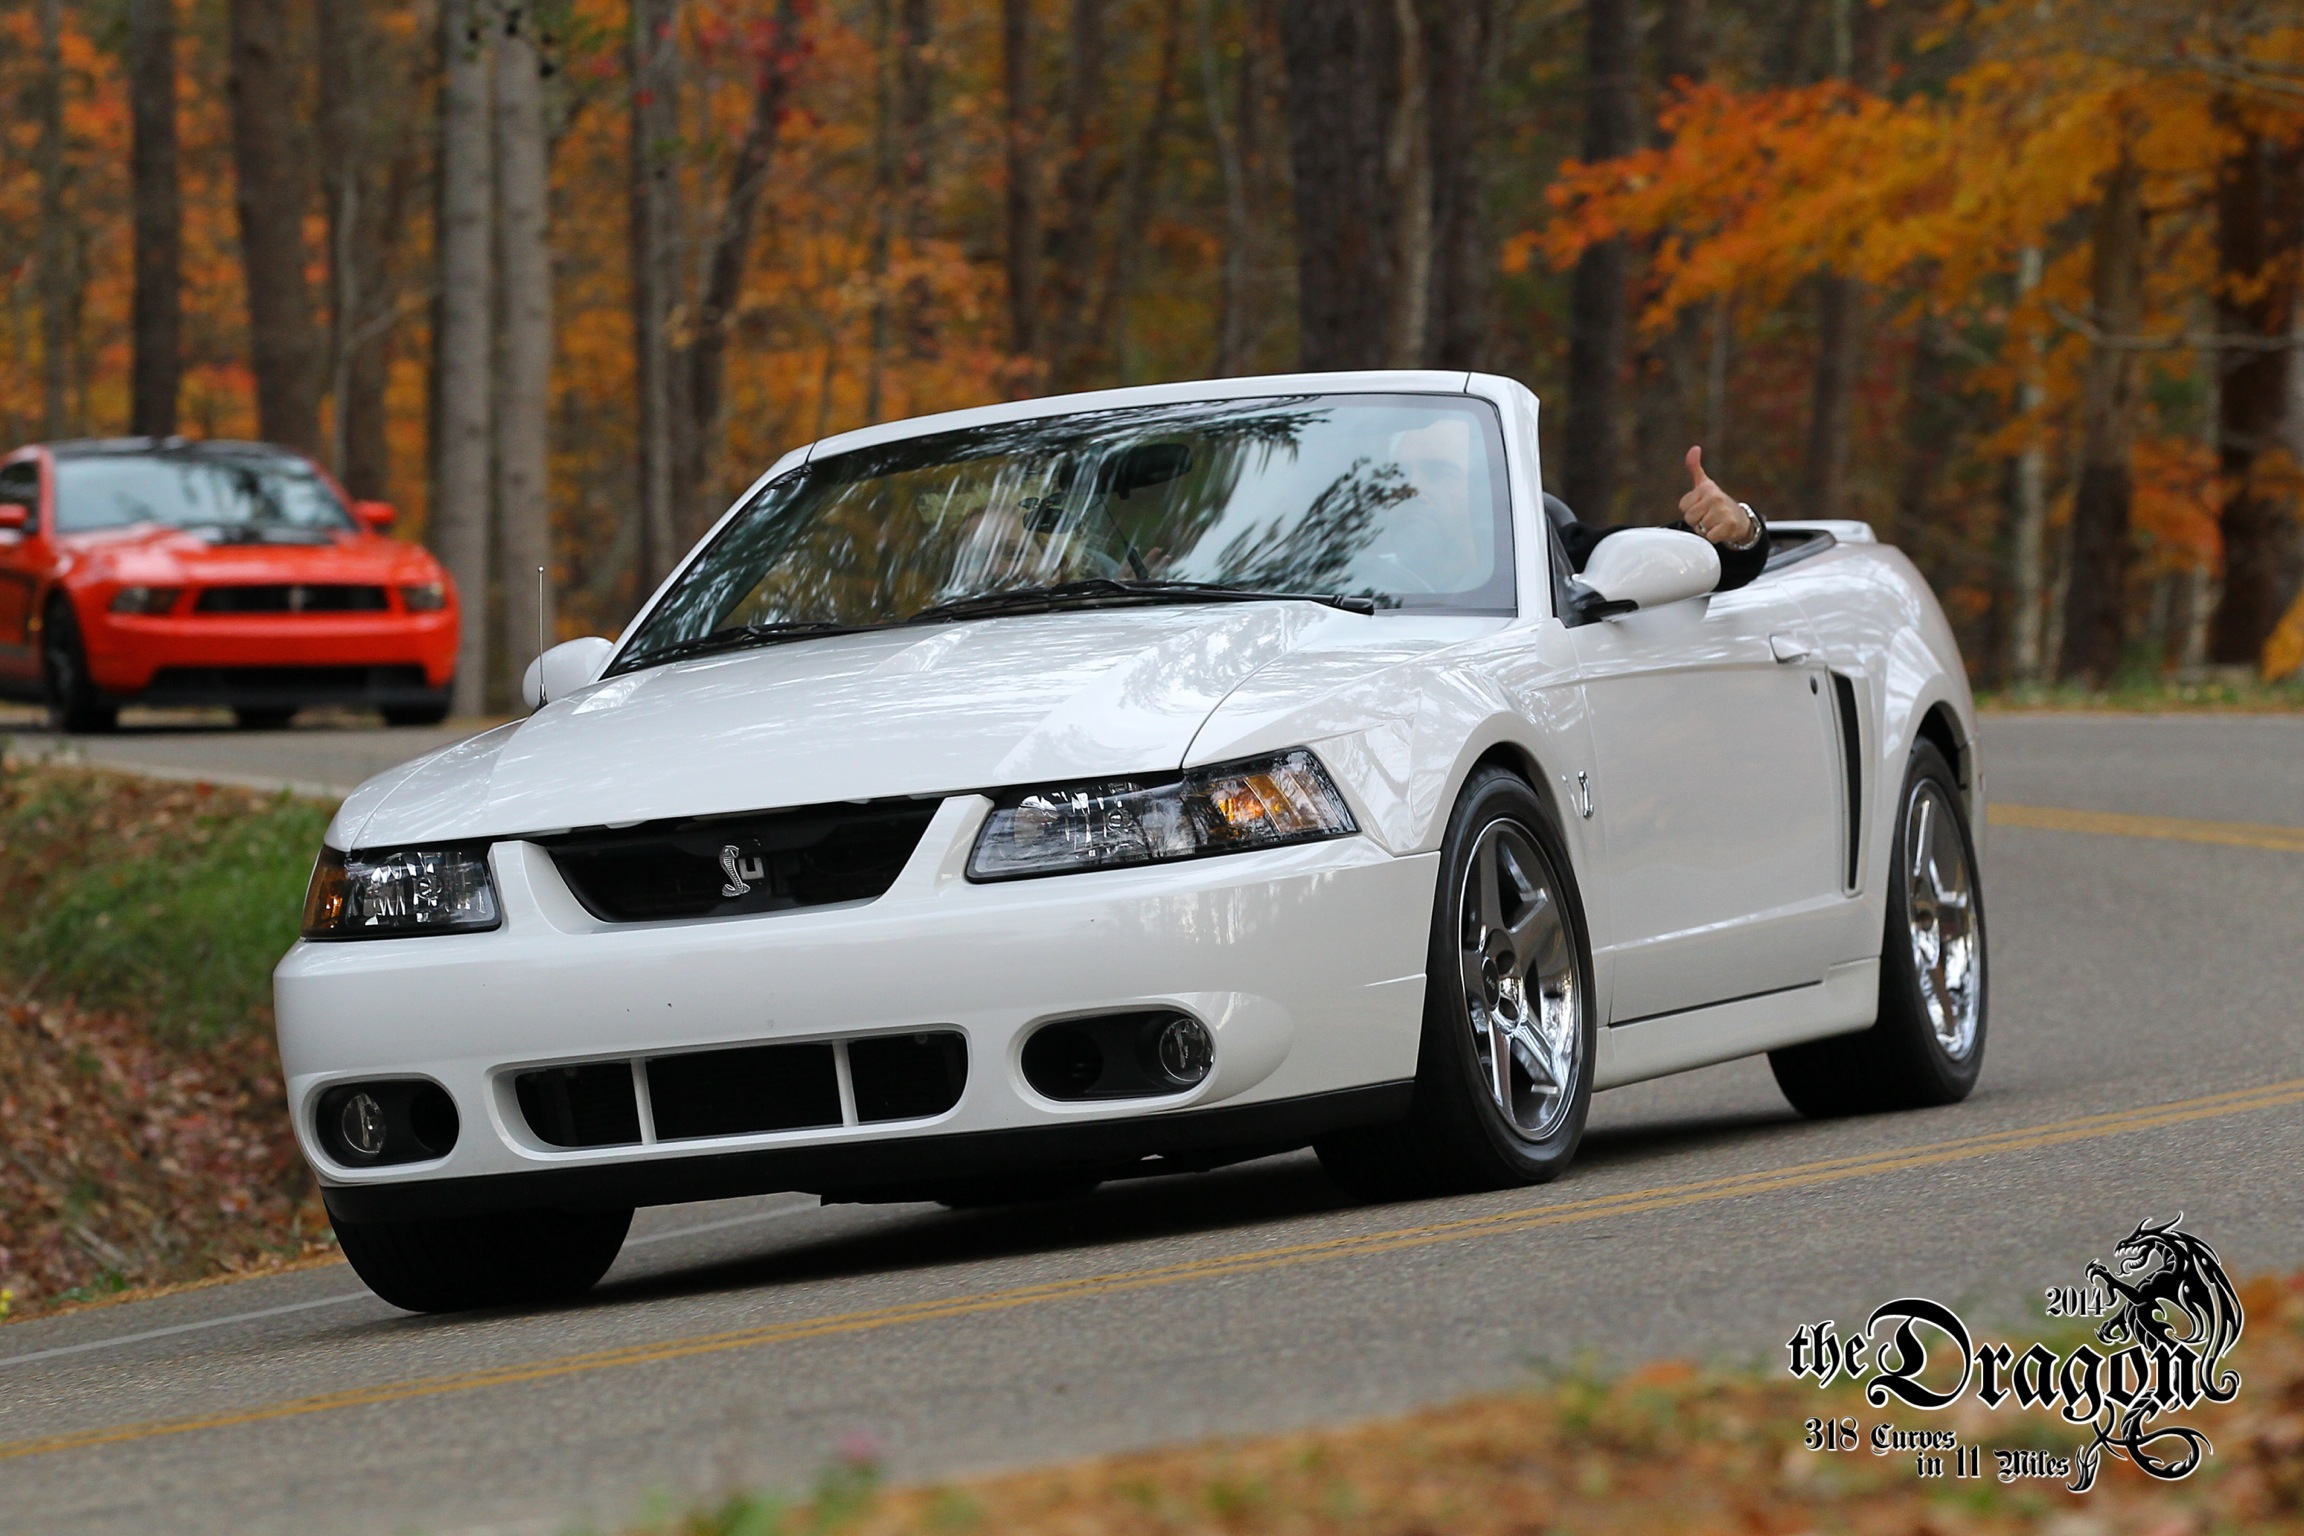 The Dragon - Joe Pearce 2003 Ford SVT Cobra Mustang Shot